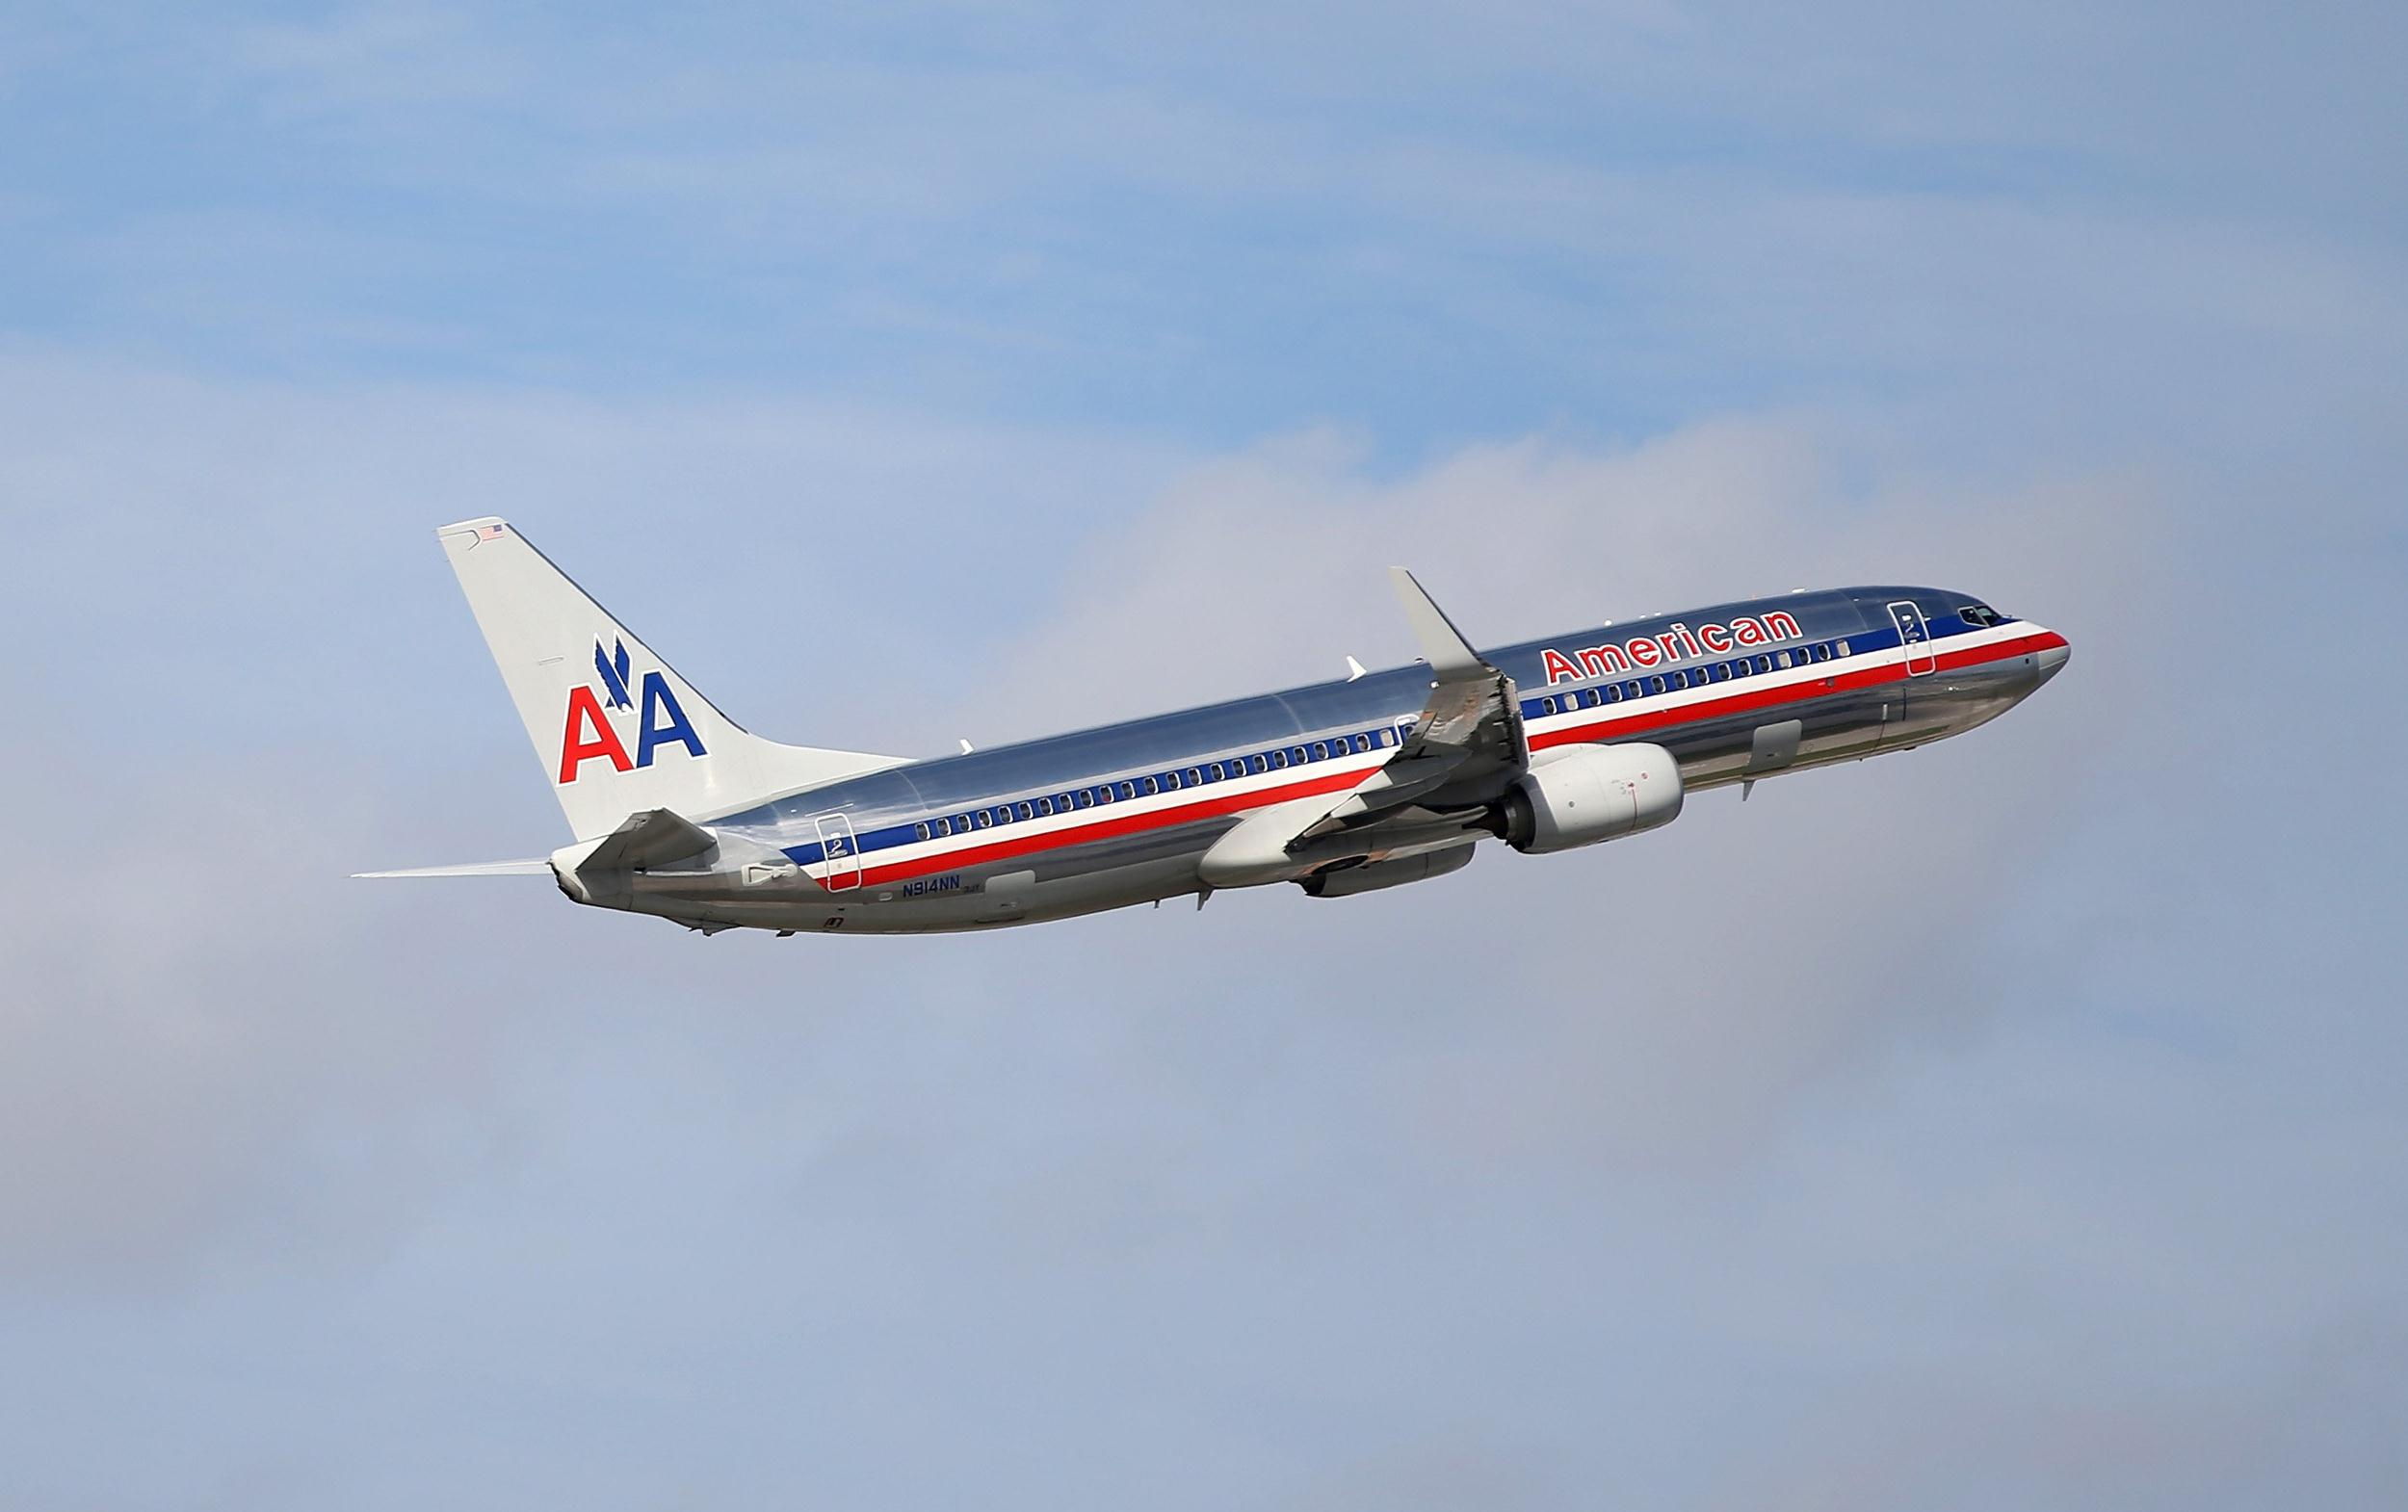 Image: An American Airlines plane